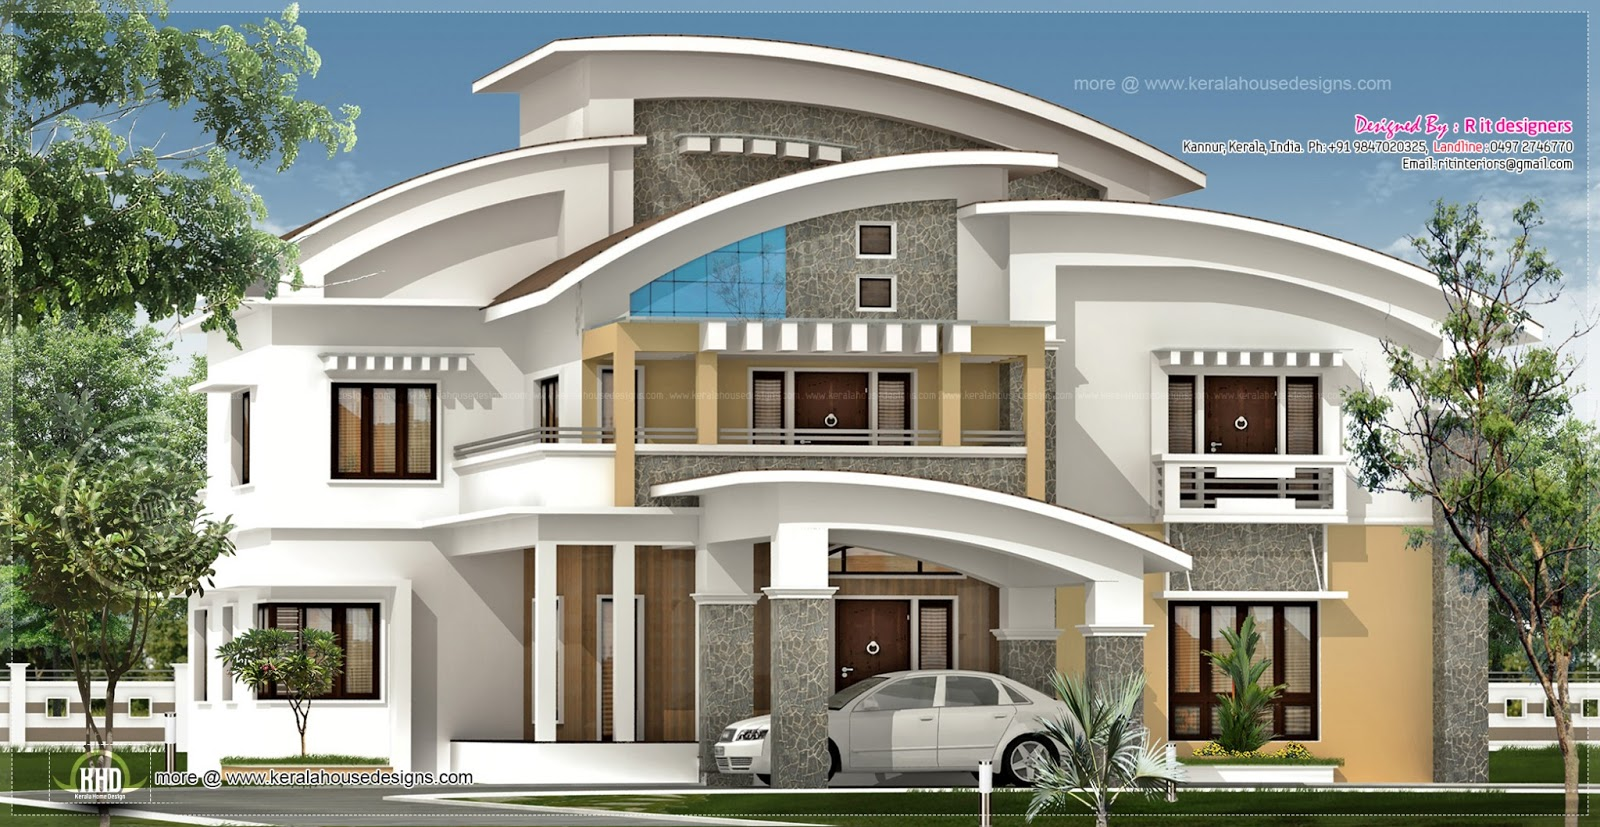 3750 square feet luxury villa exterior house design plans for House design pictures exterior